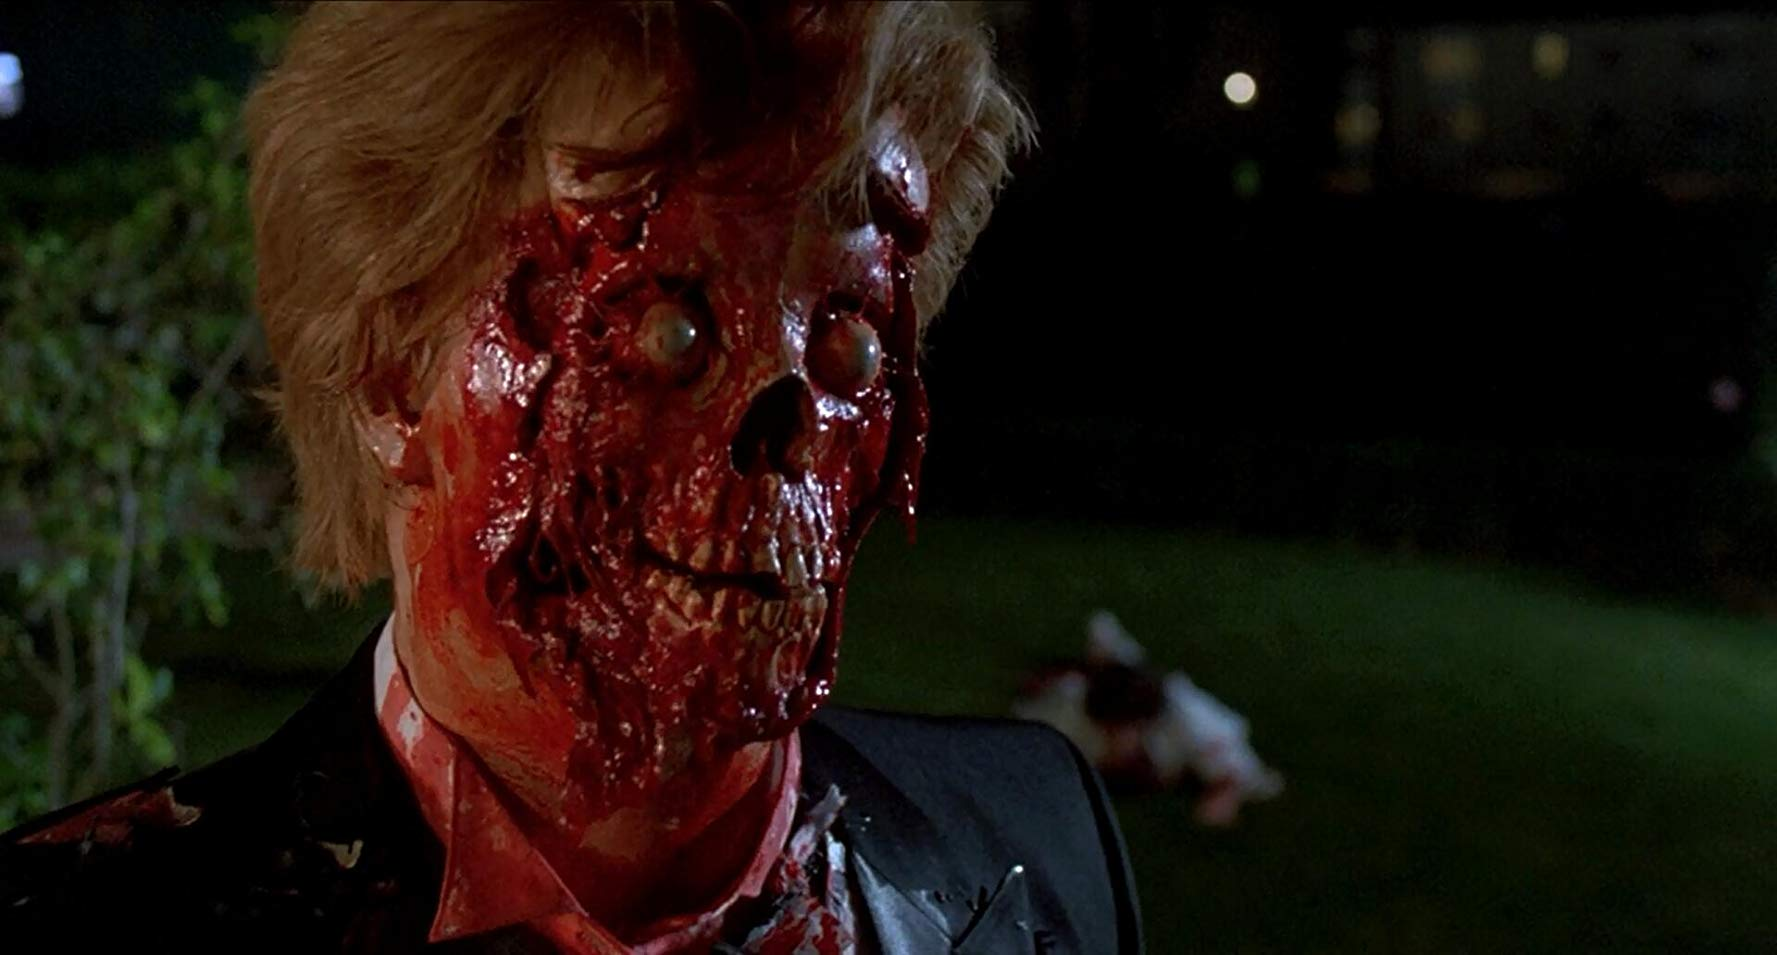 [News] Scream Factory Presents NIGHT OF THE CREEPS Collector's Edition